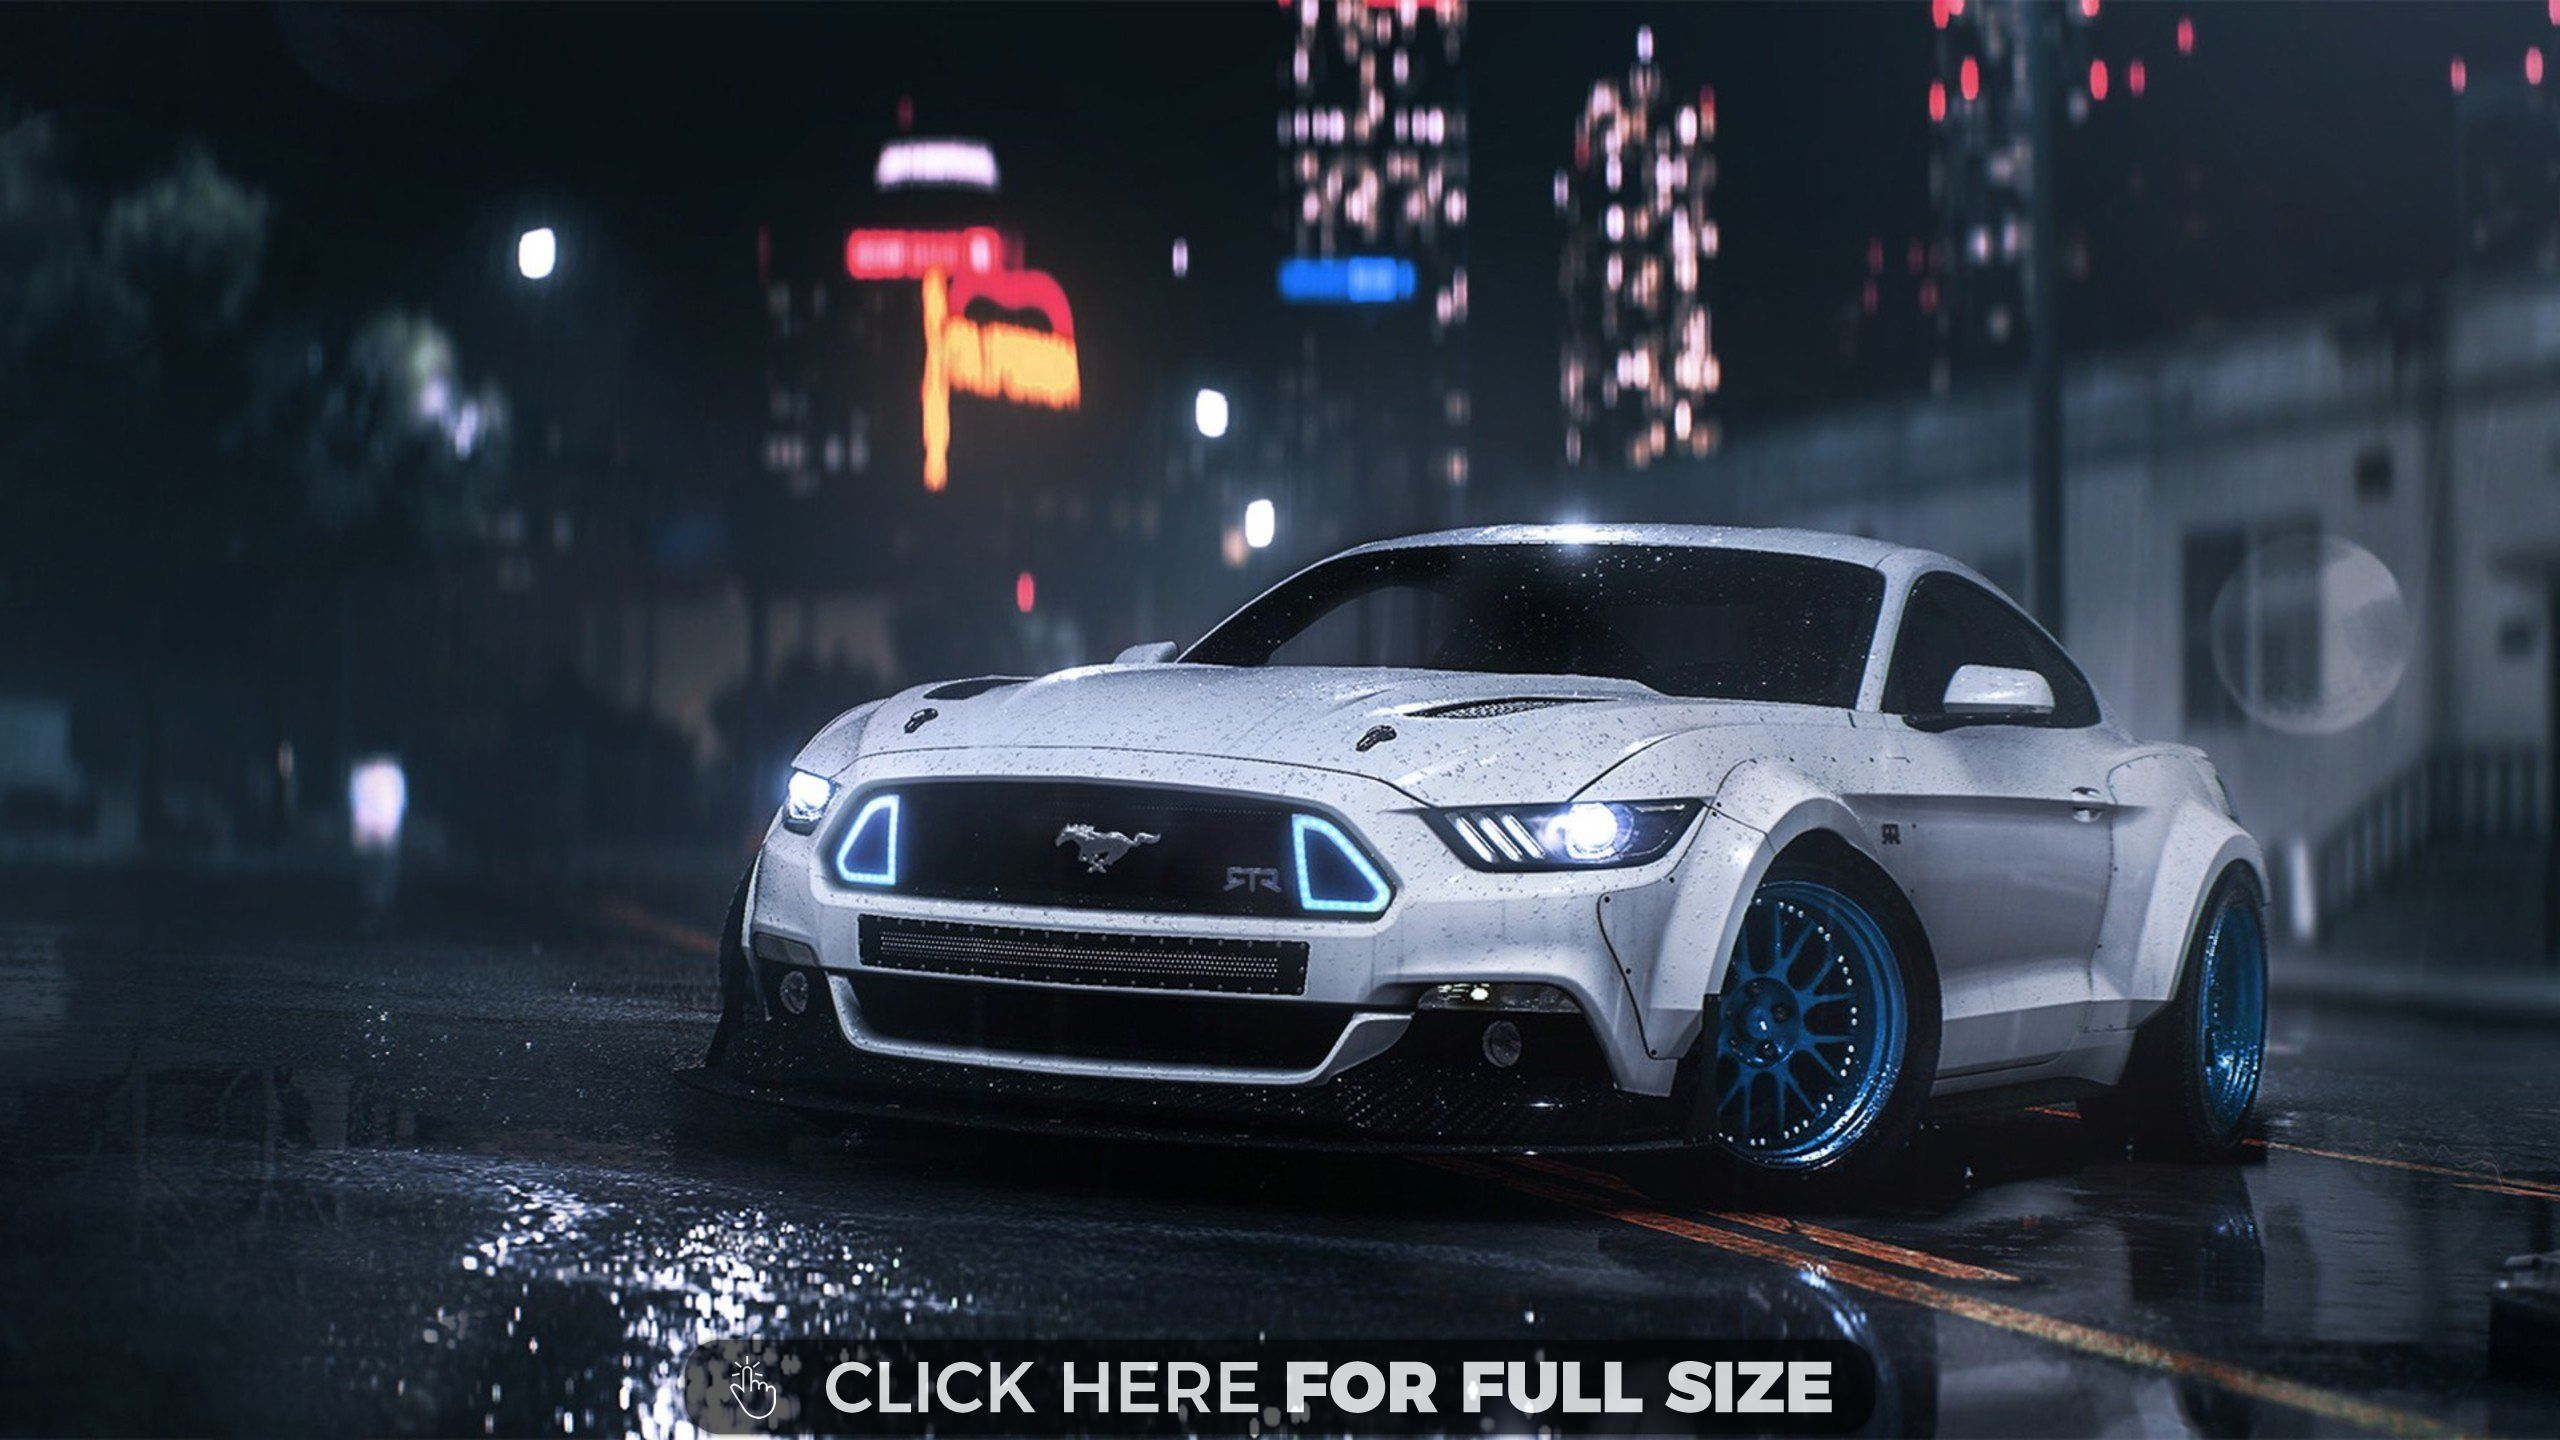 Ford Mustang Gt Hd Wallpaper Neuer Ford Mustang Ford Mustang Mustang